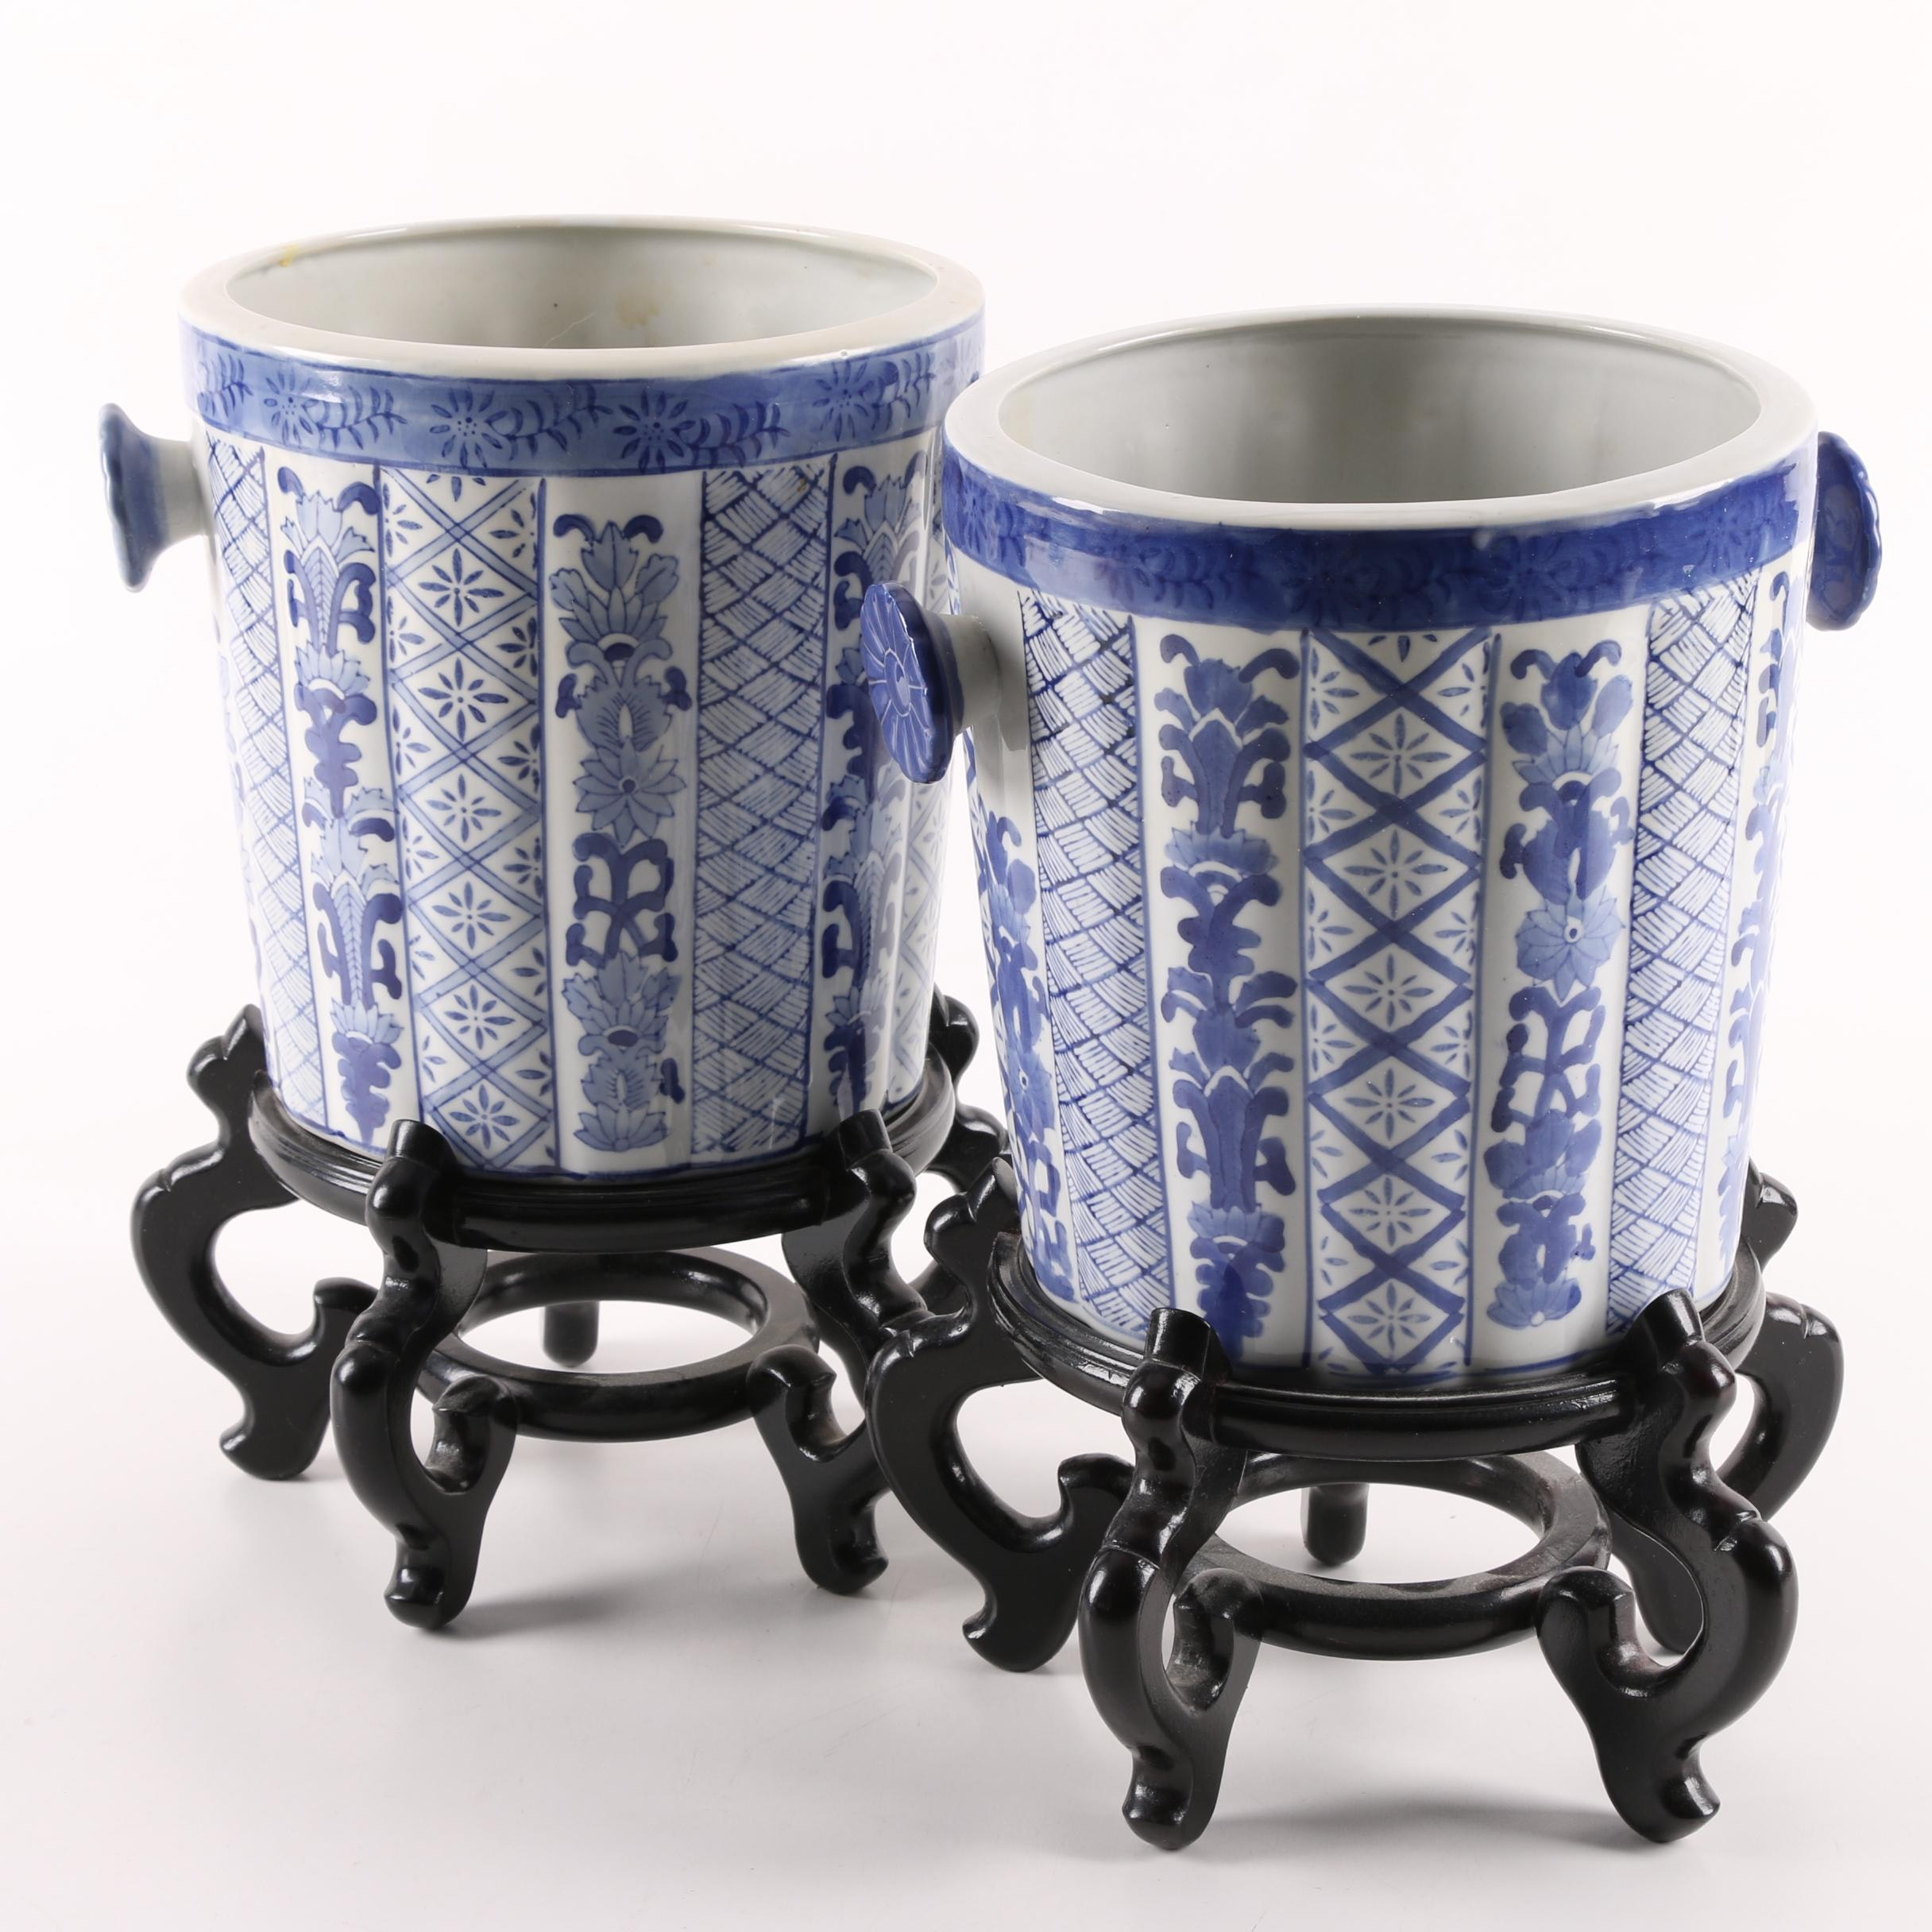 East Asian Blue and White Ceramic Planters with Stands